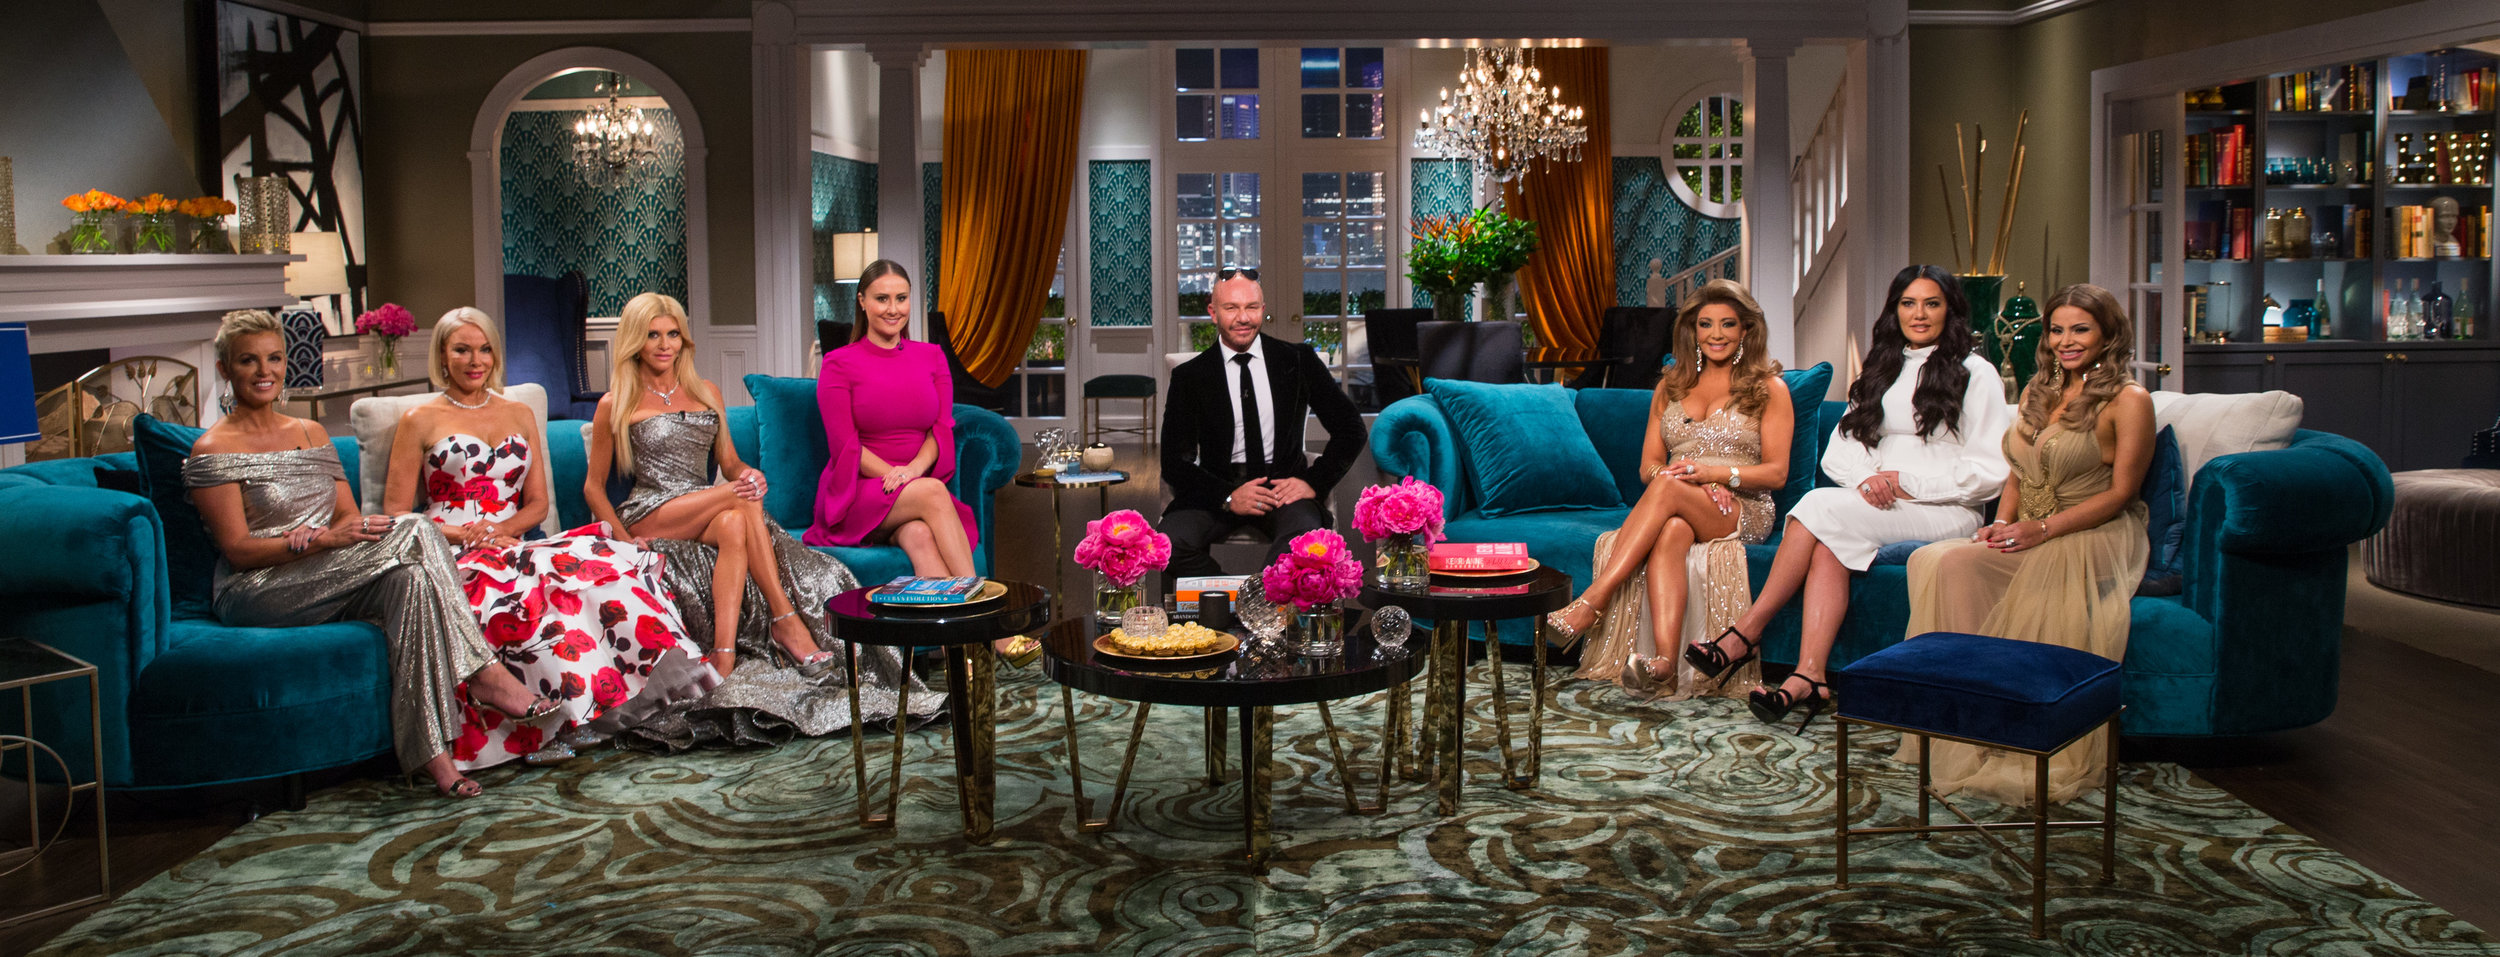 The Real Housewives of Melbourne S04 Reunion  Image - Arena